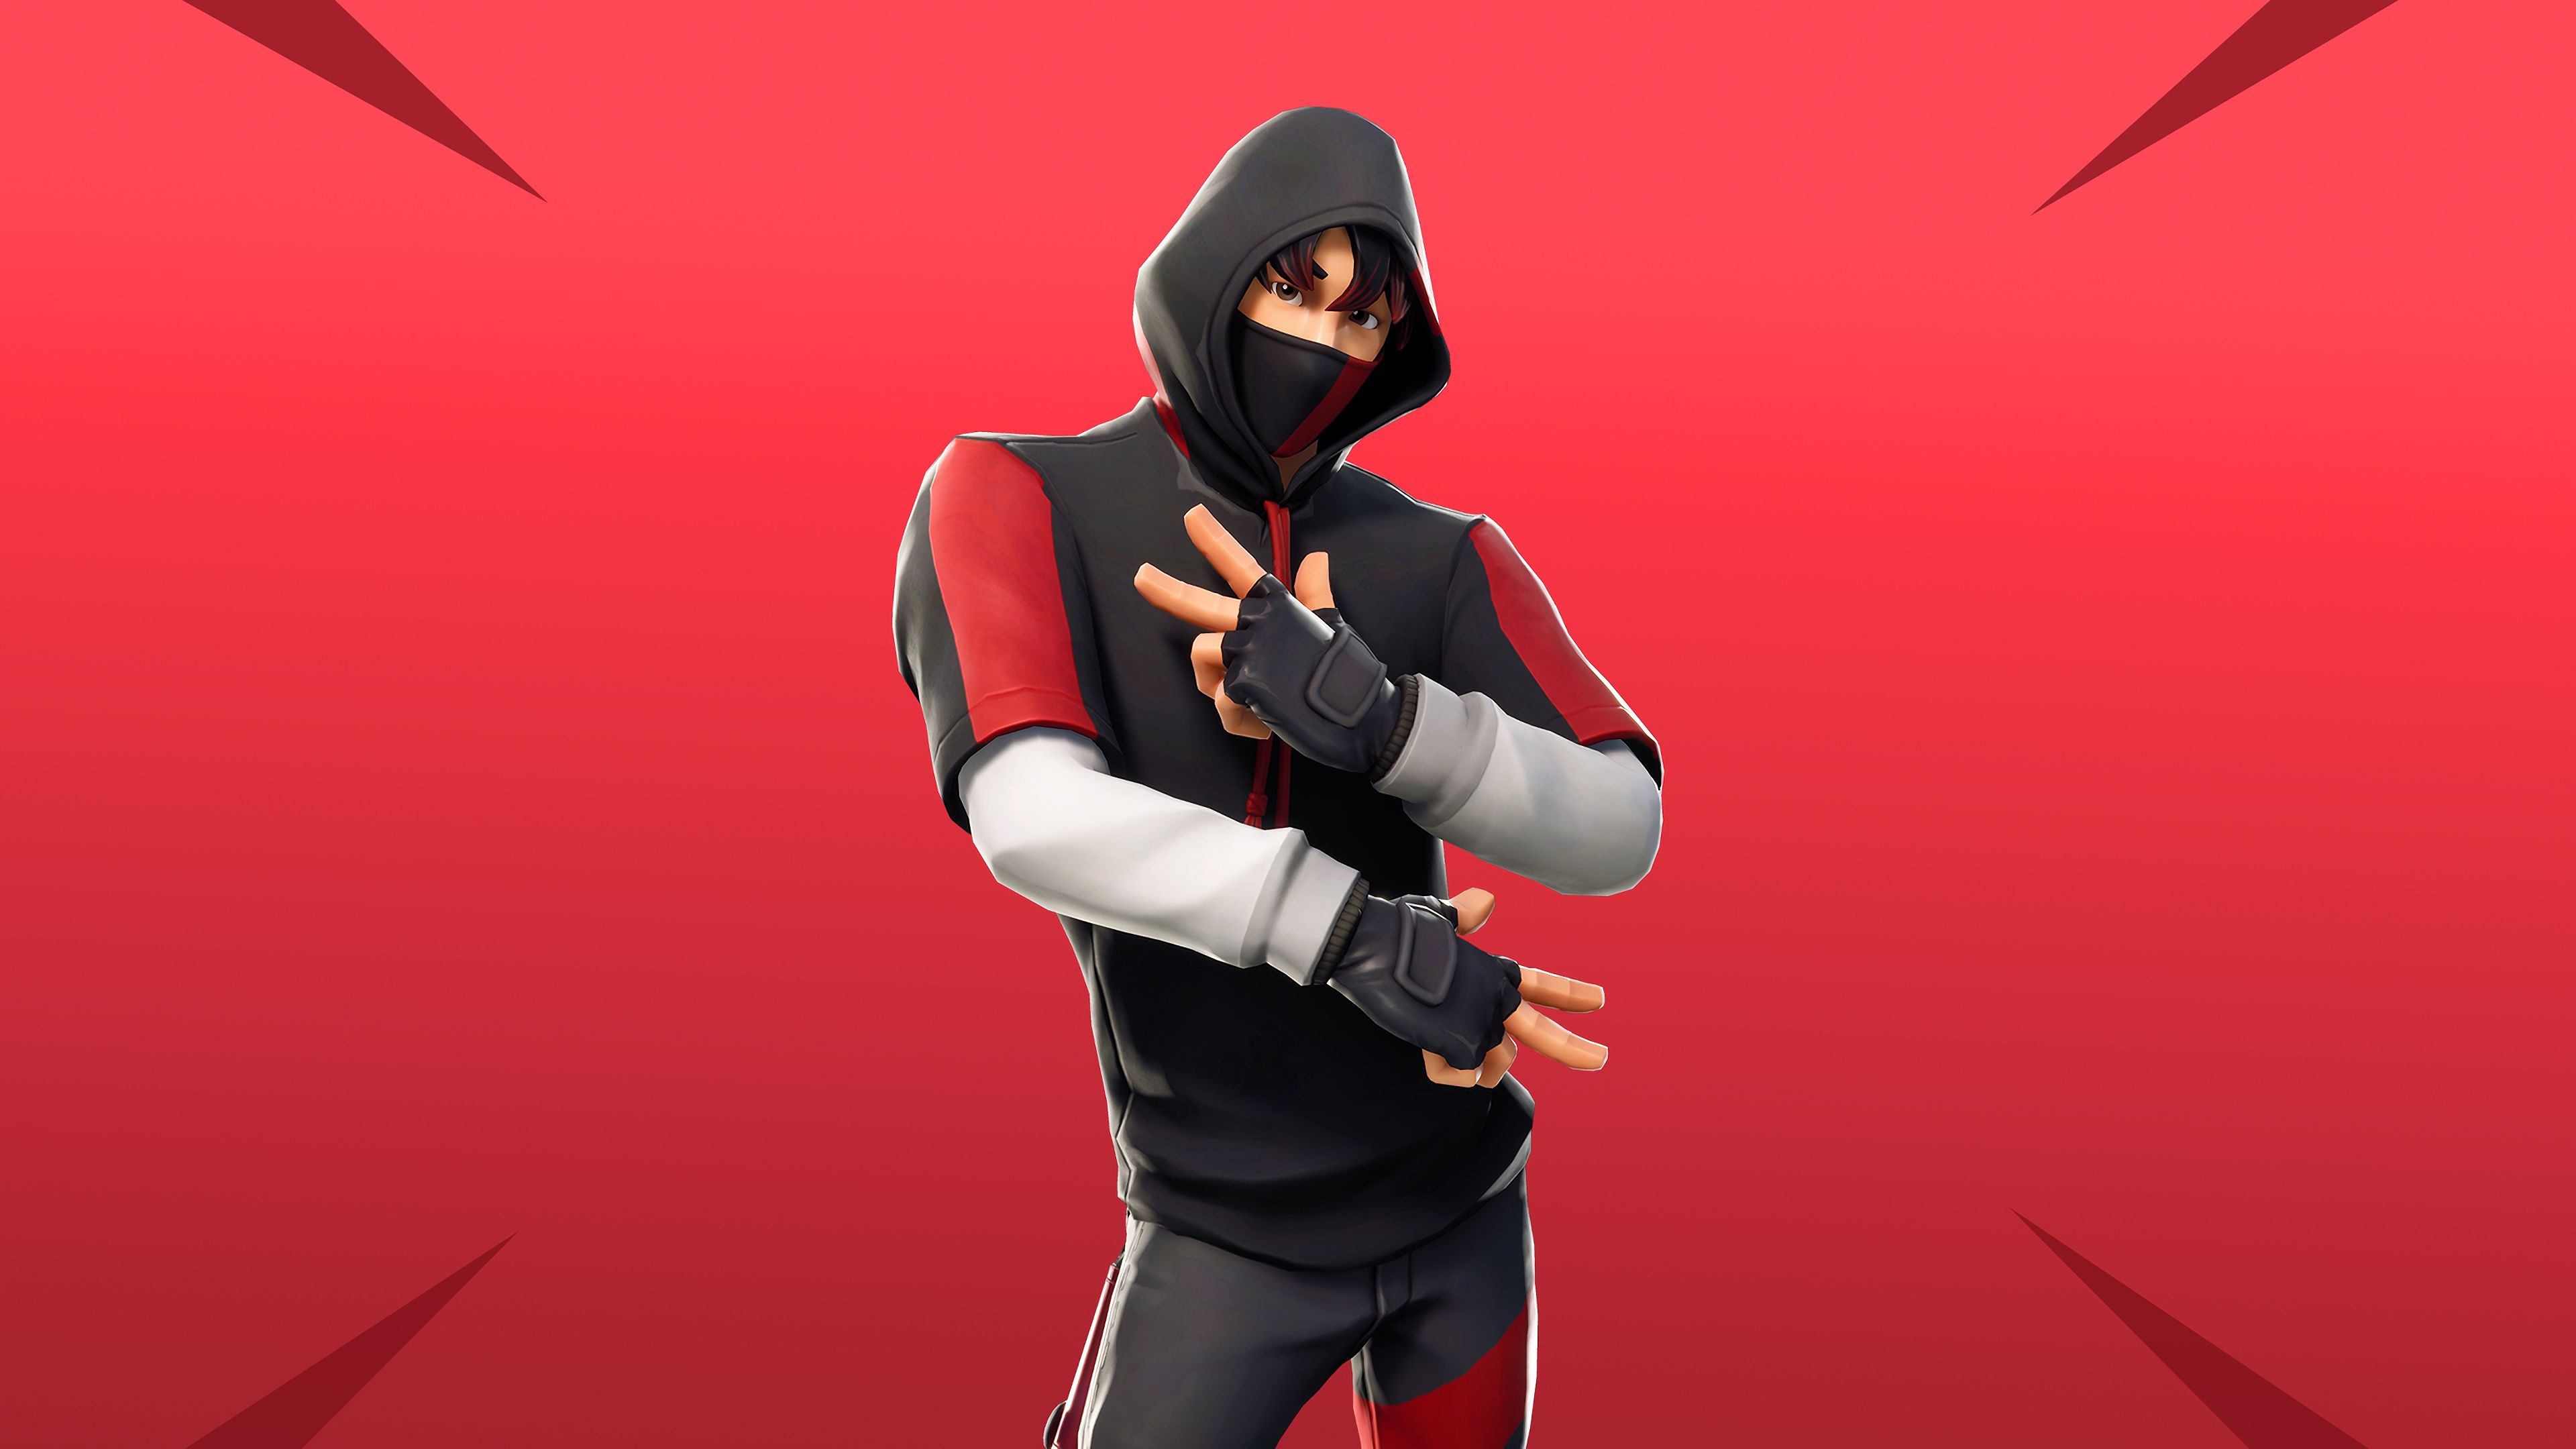 Iconic Skin Fortnite Wallpapers Wallpaper Cave